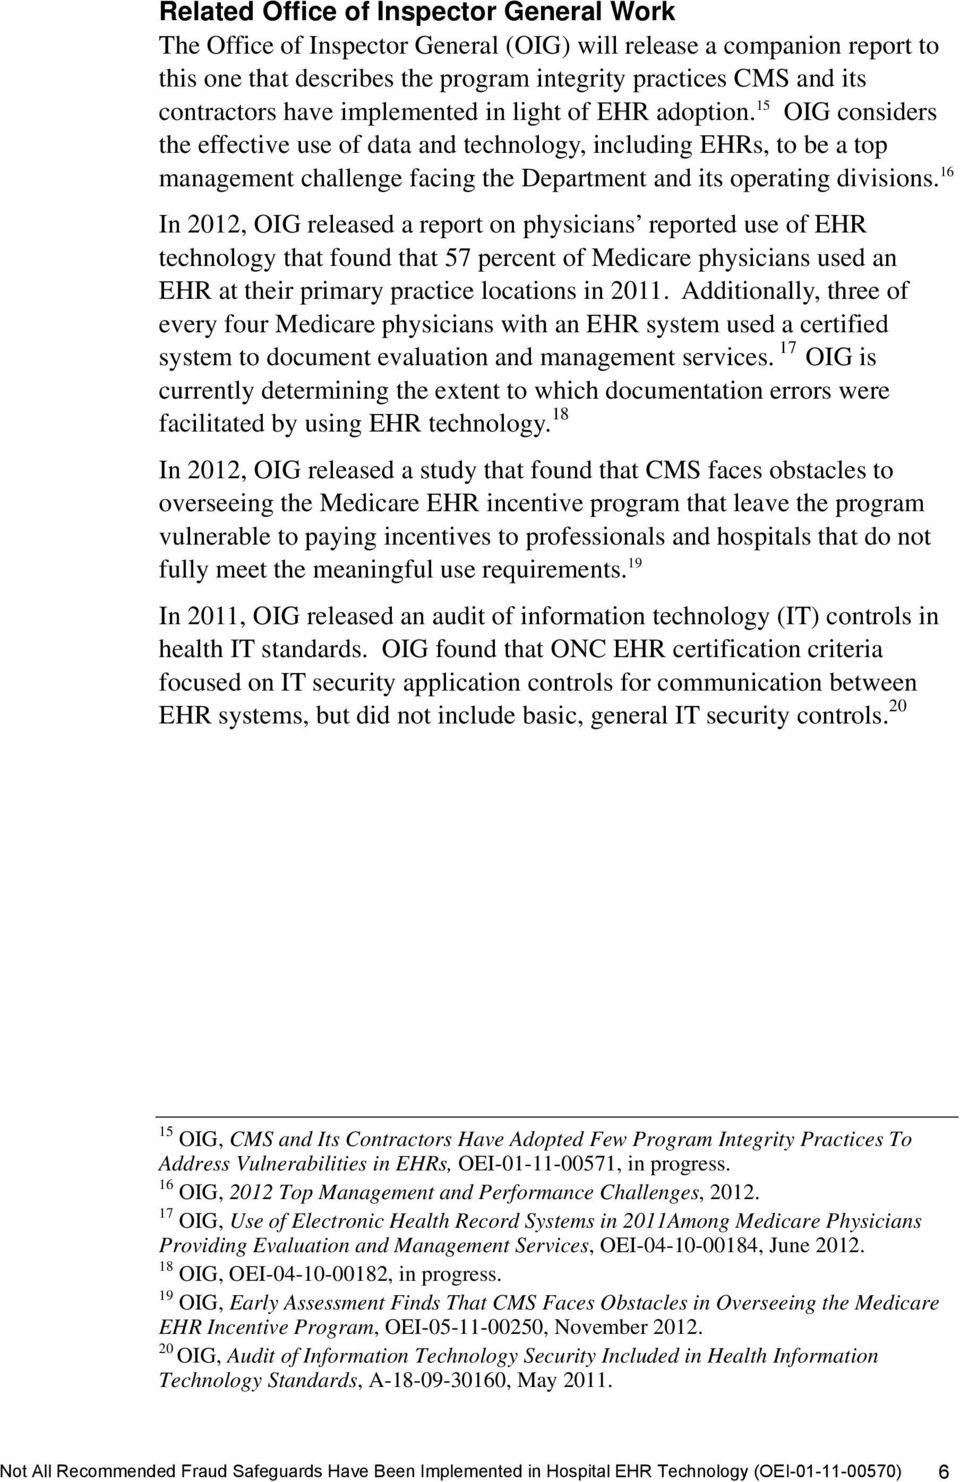 16 In 2012, OIG released a report on physicians reported use of EHR technology that found that 57 percent of Medicare physicians used an EHR at their primary practice locations in 2011.